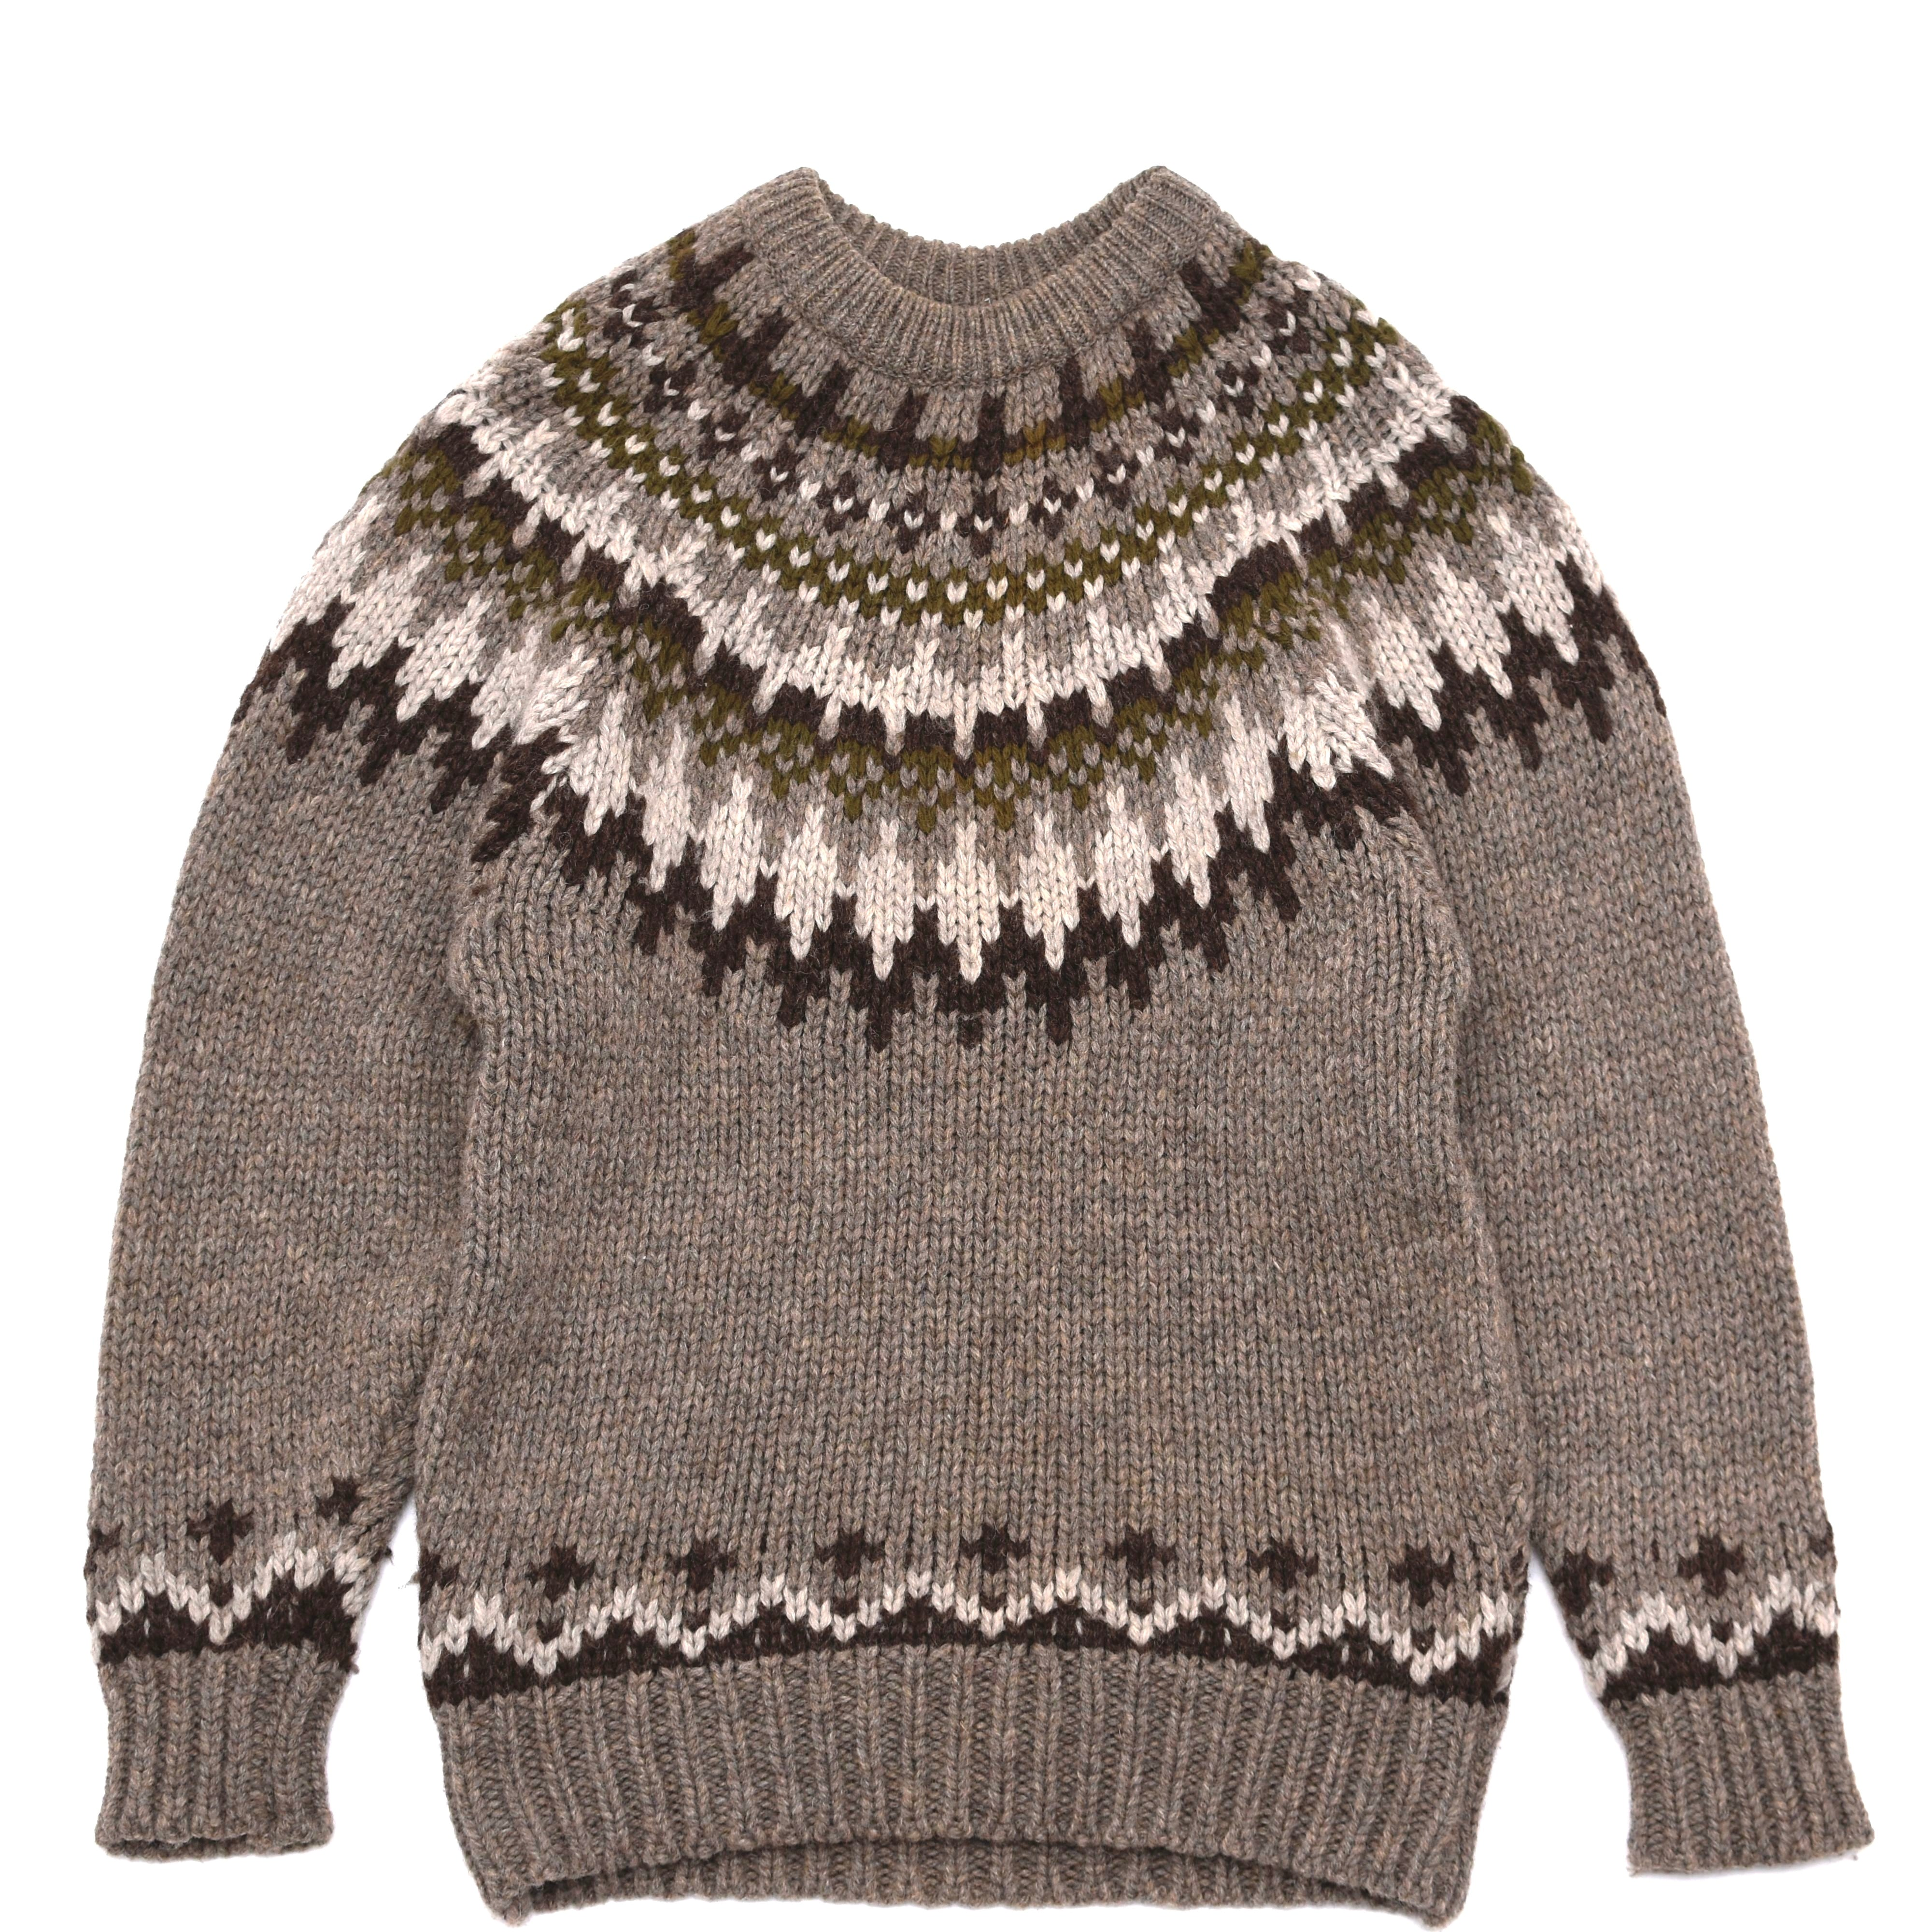 Nordic pattern wool pullover knit